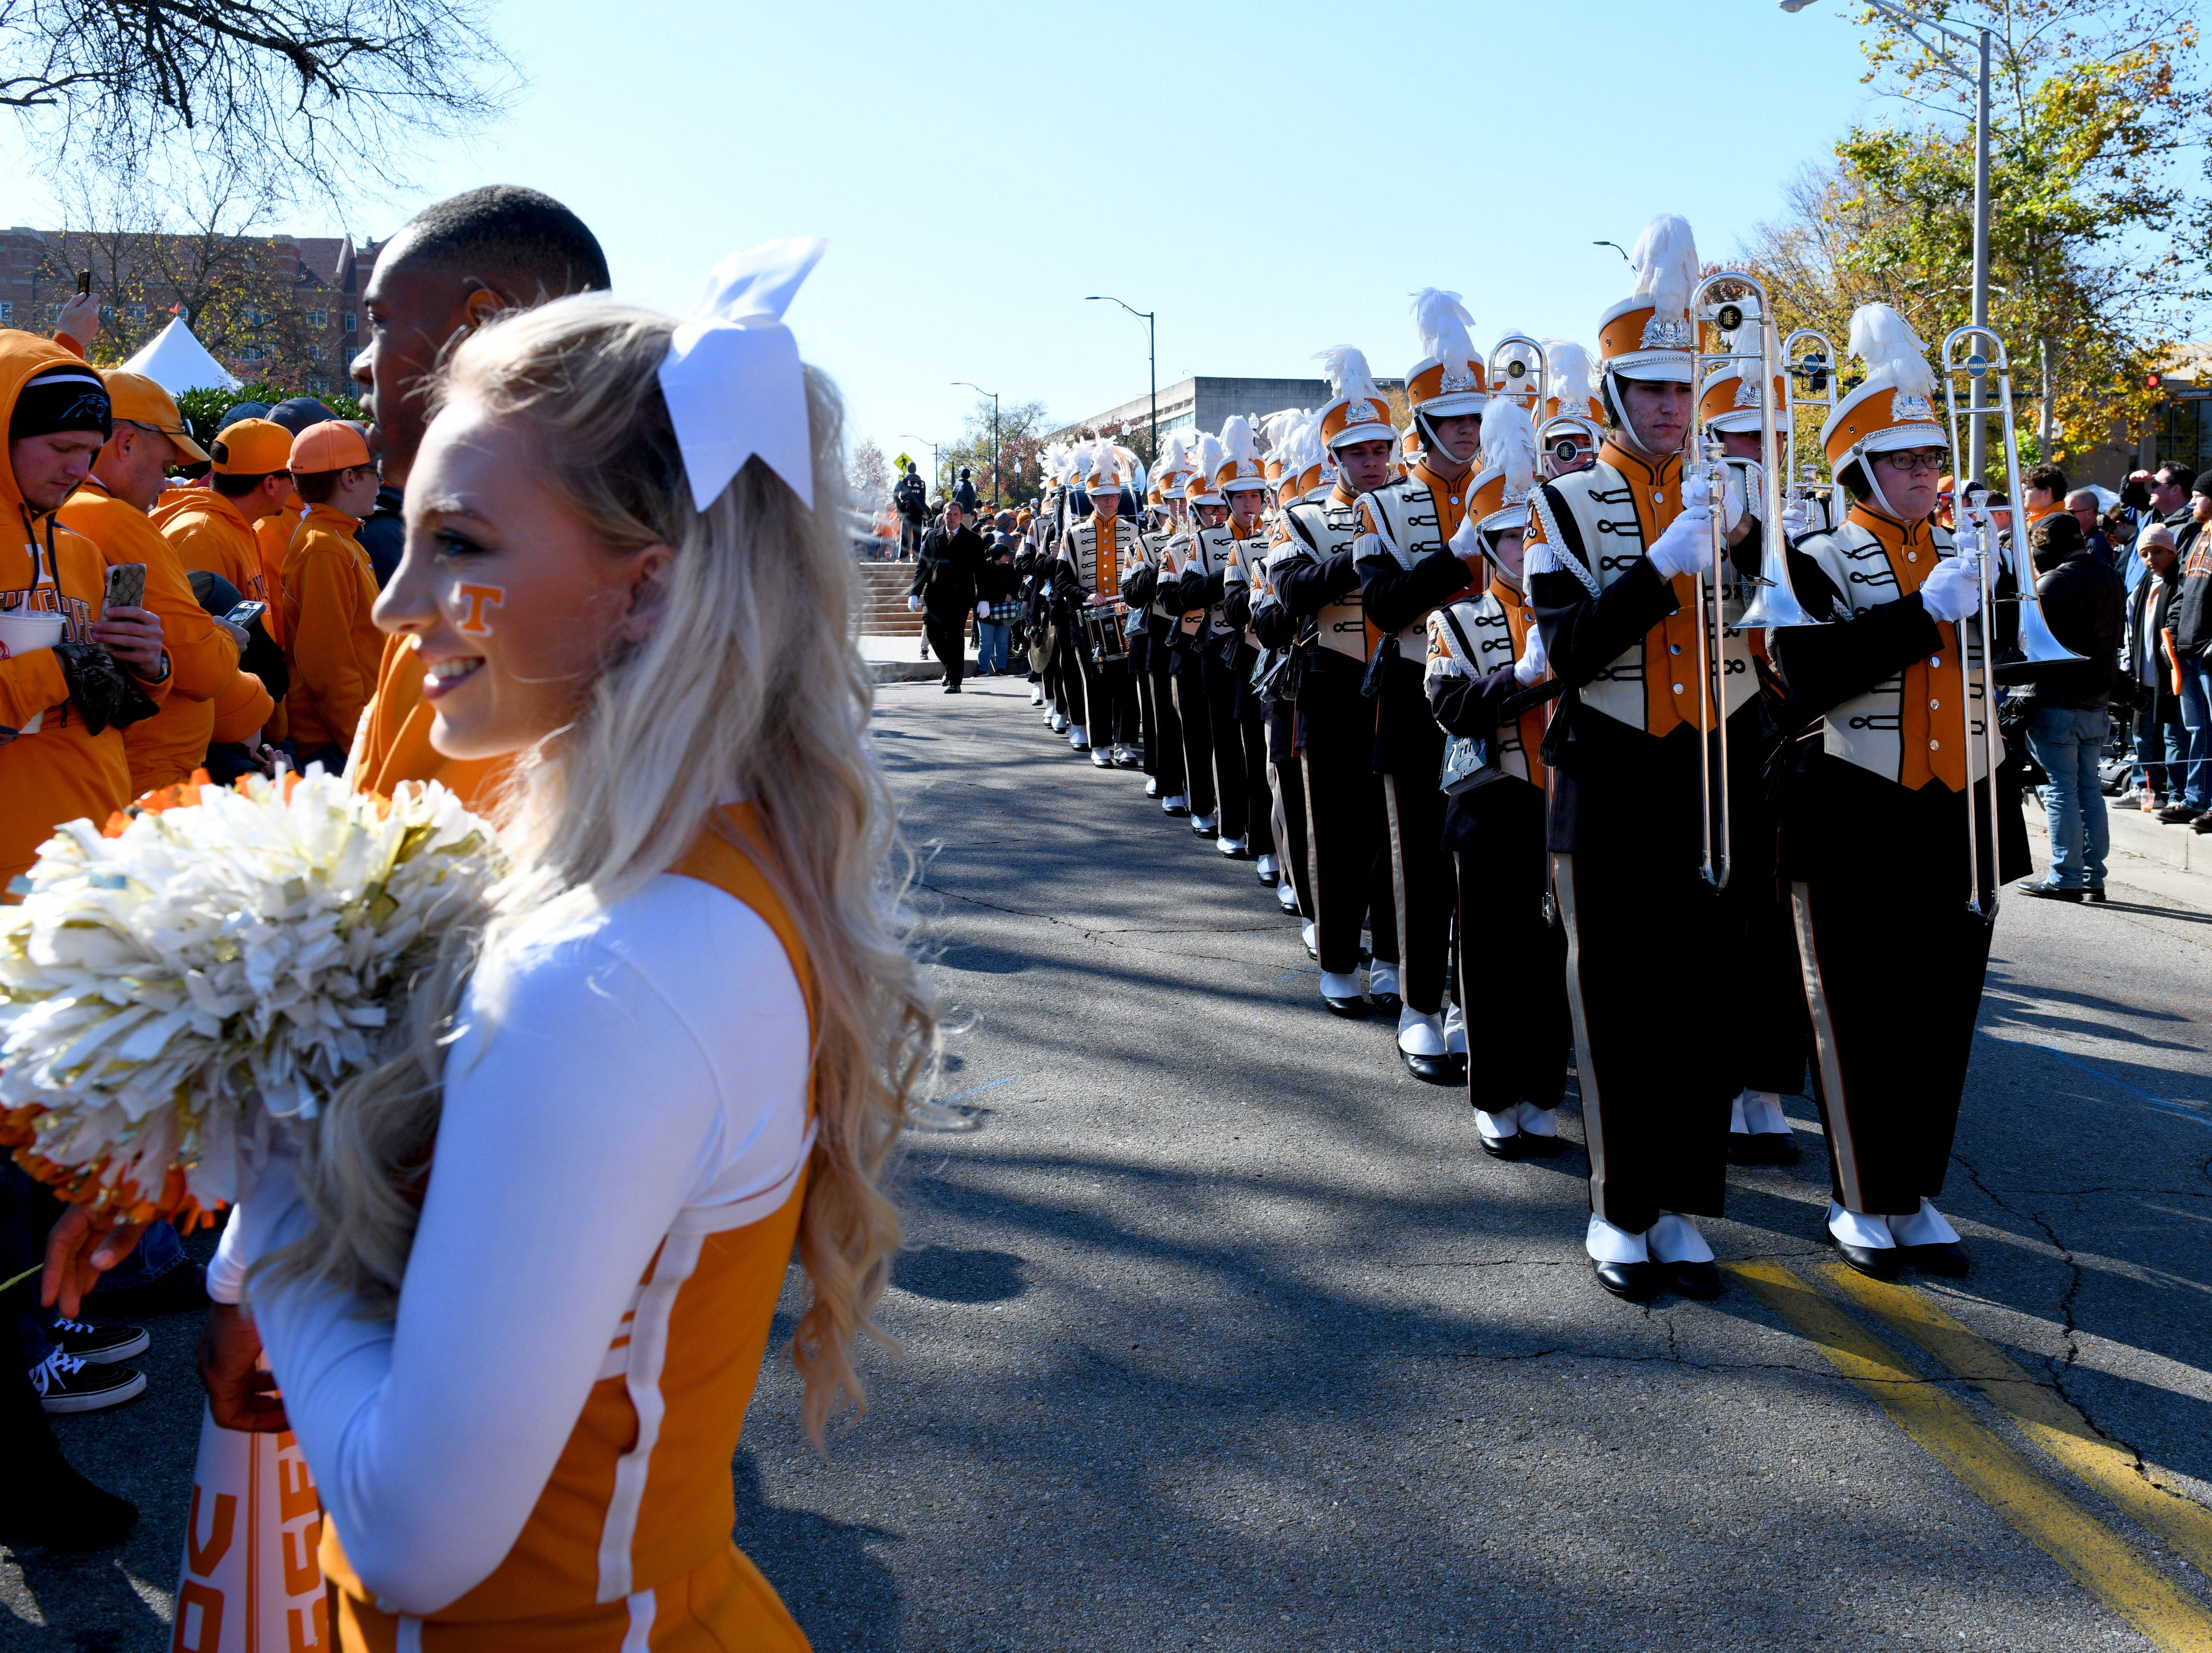 Tennessee perp band arriving for the Vol Walk before the Kentucky game Saturday, November 10, 2018 at Neyland Stadium in Knoxville, Tenn.